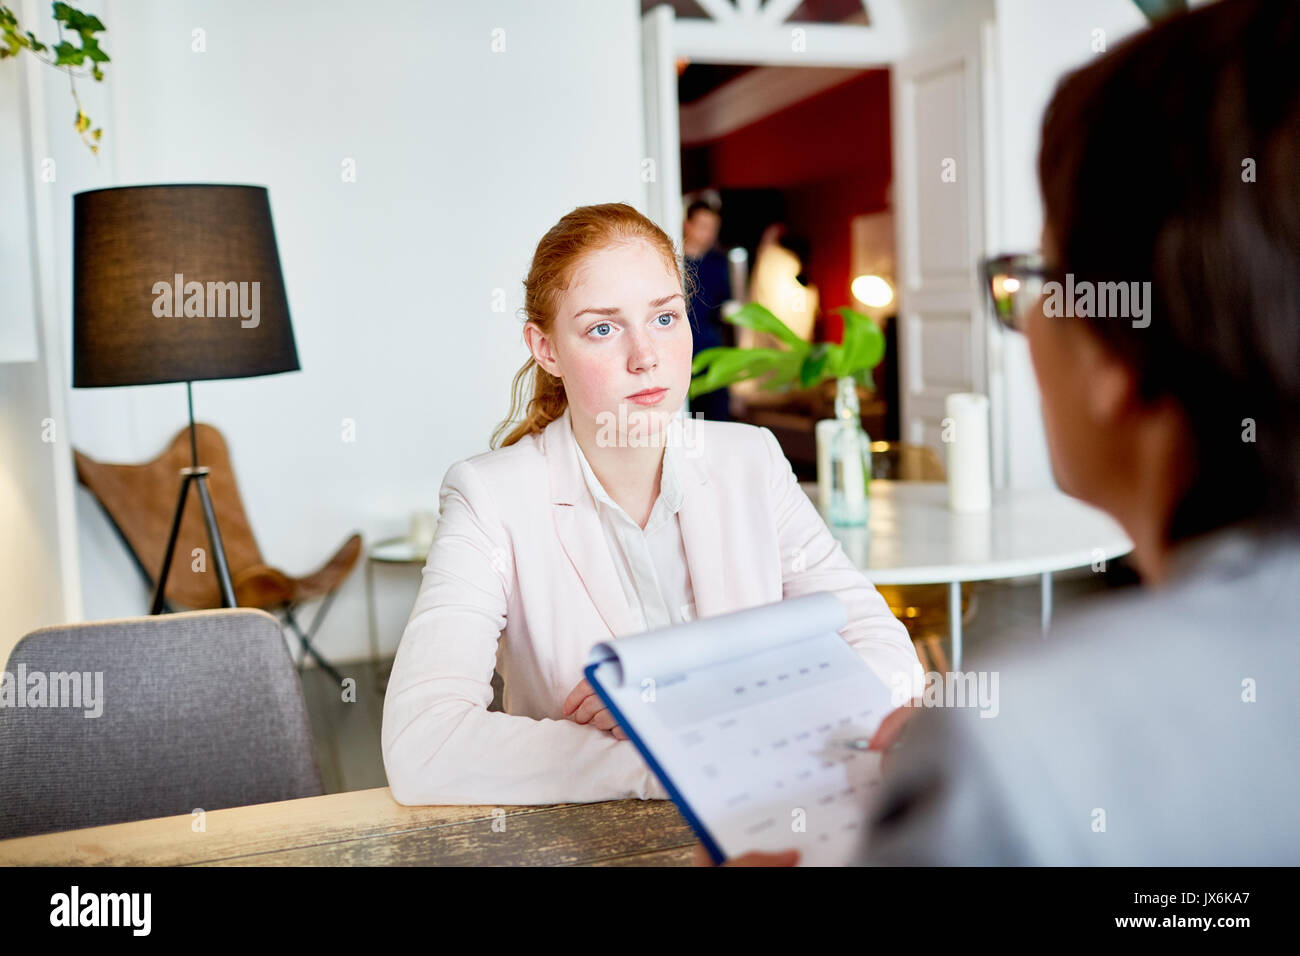 HR Manager Conducting Interview - Stock Image